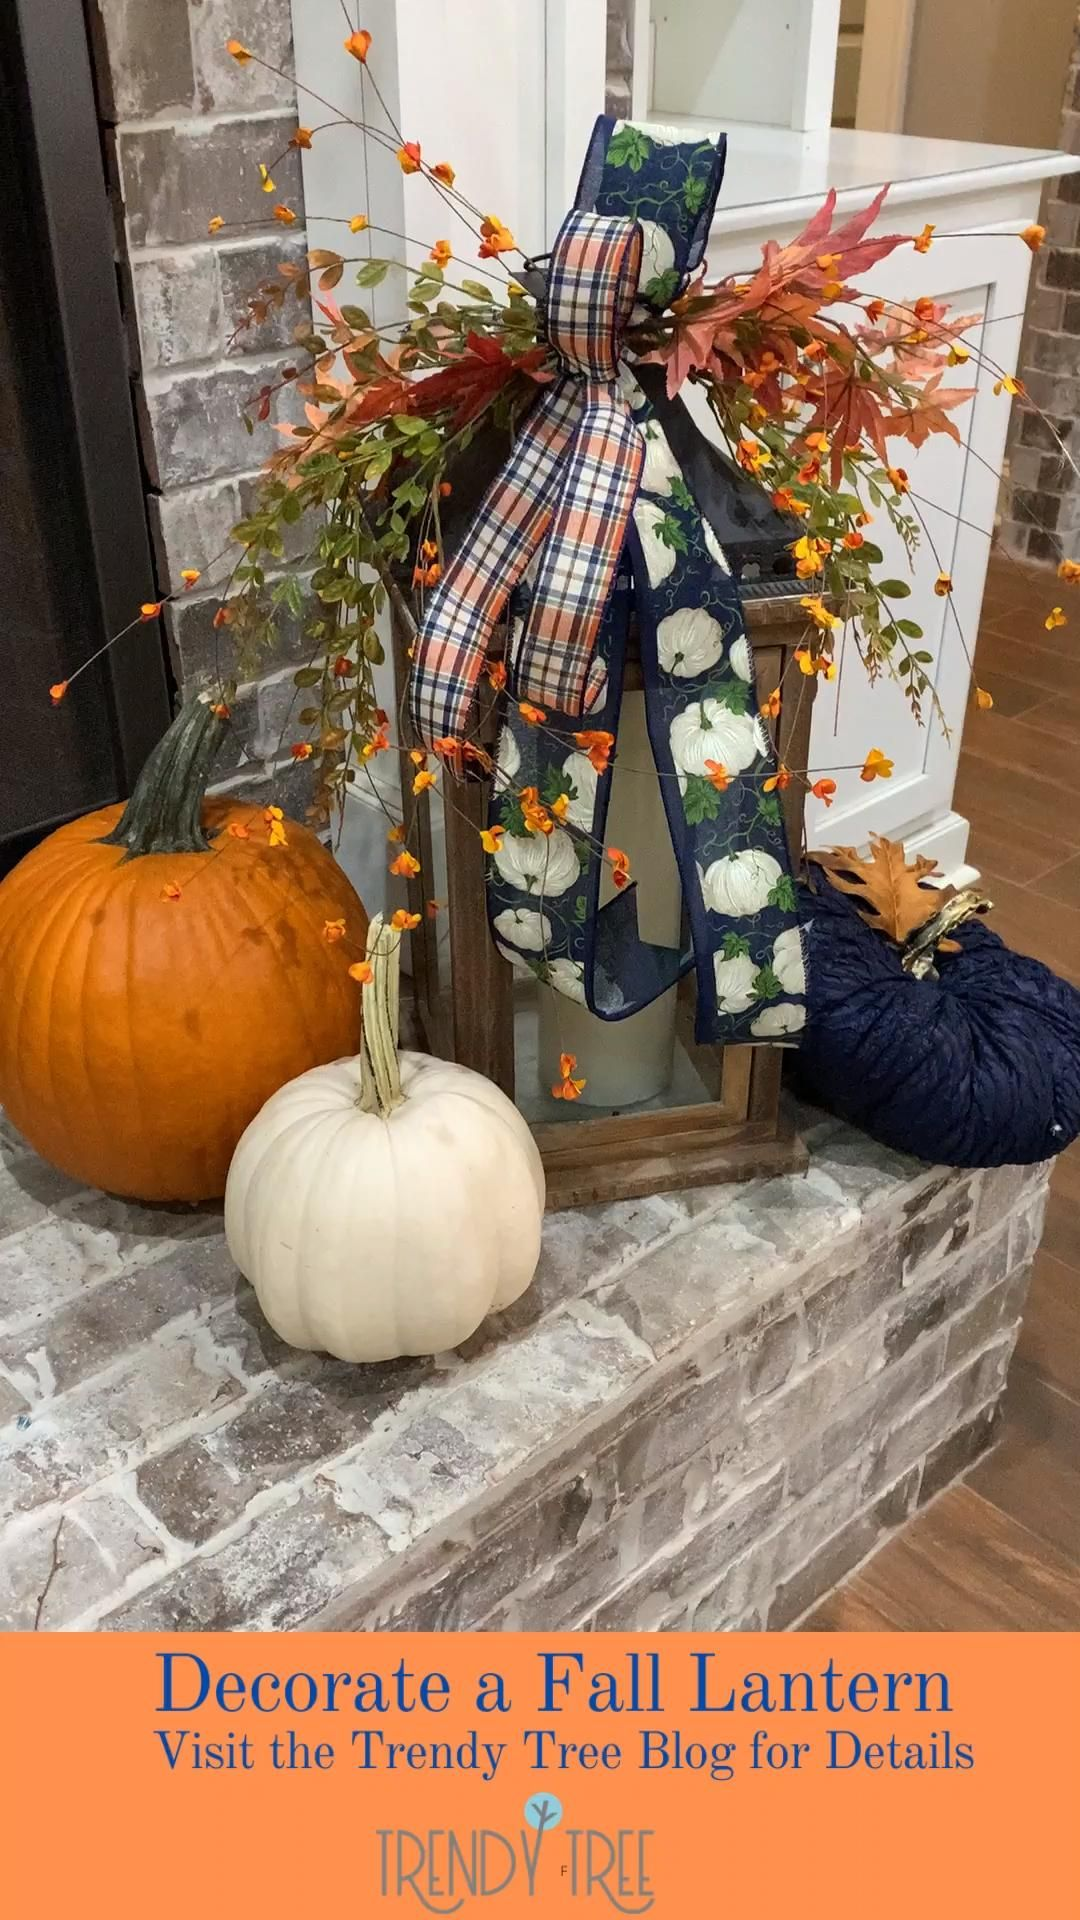 Decorate a Lantern for Fall